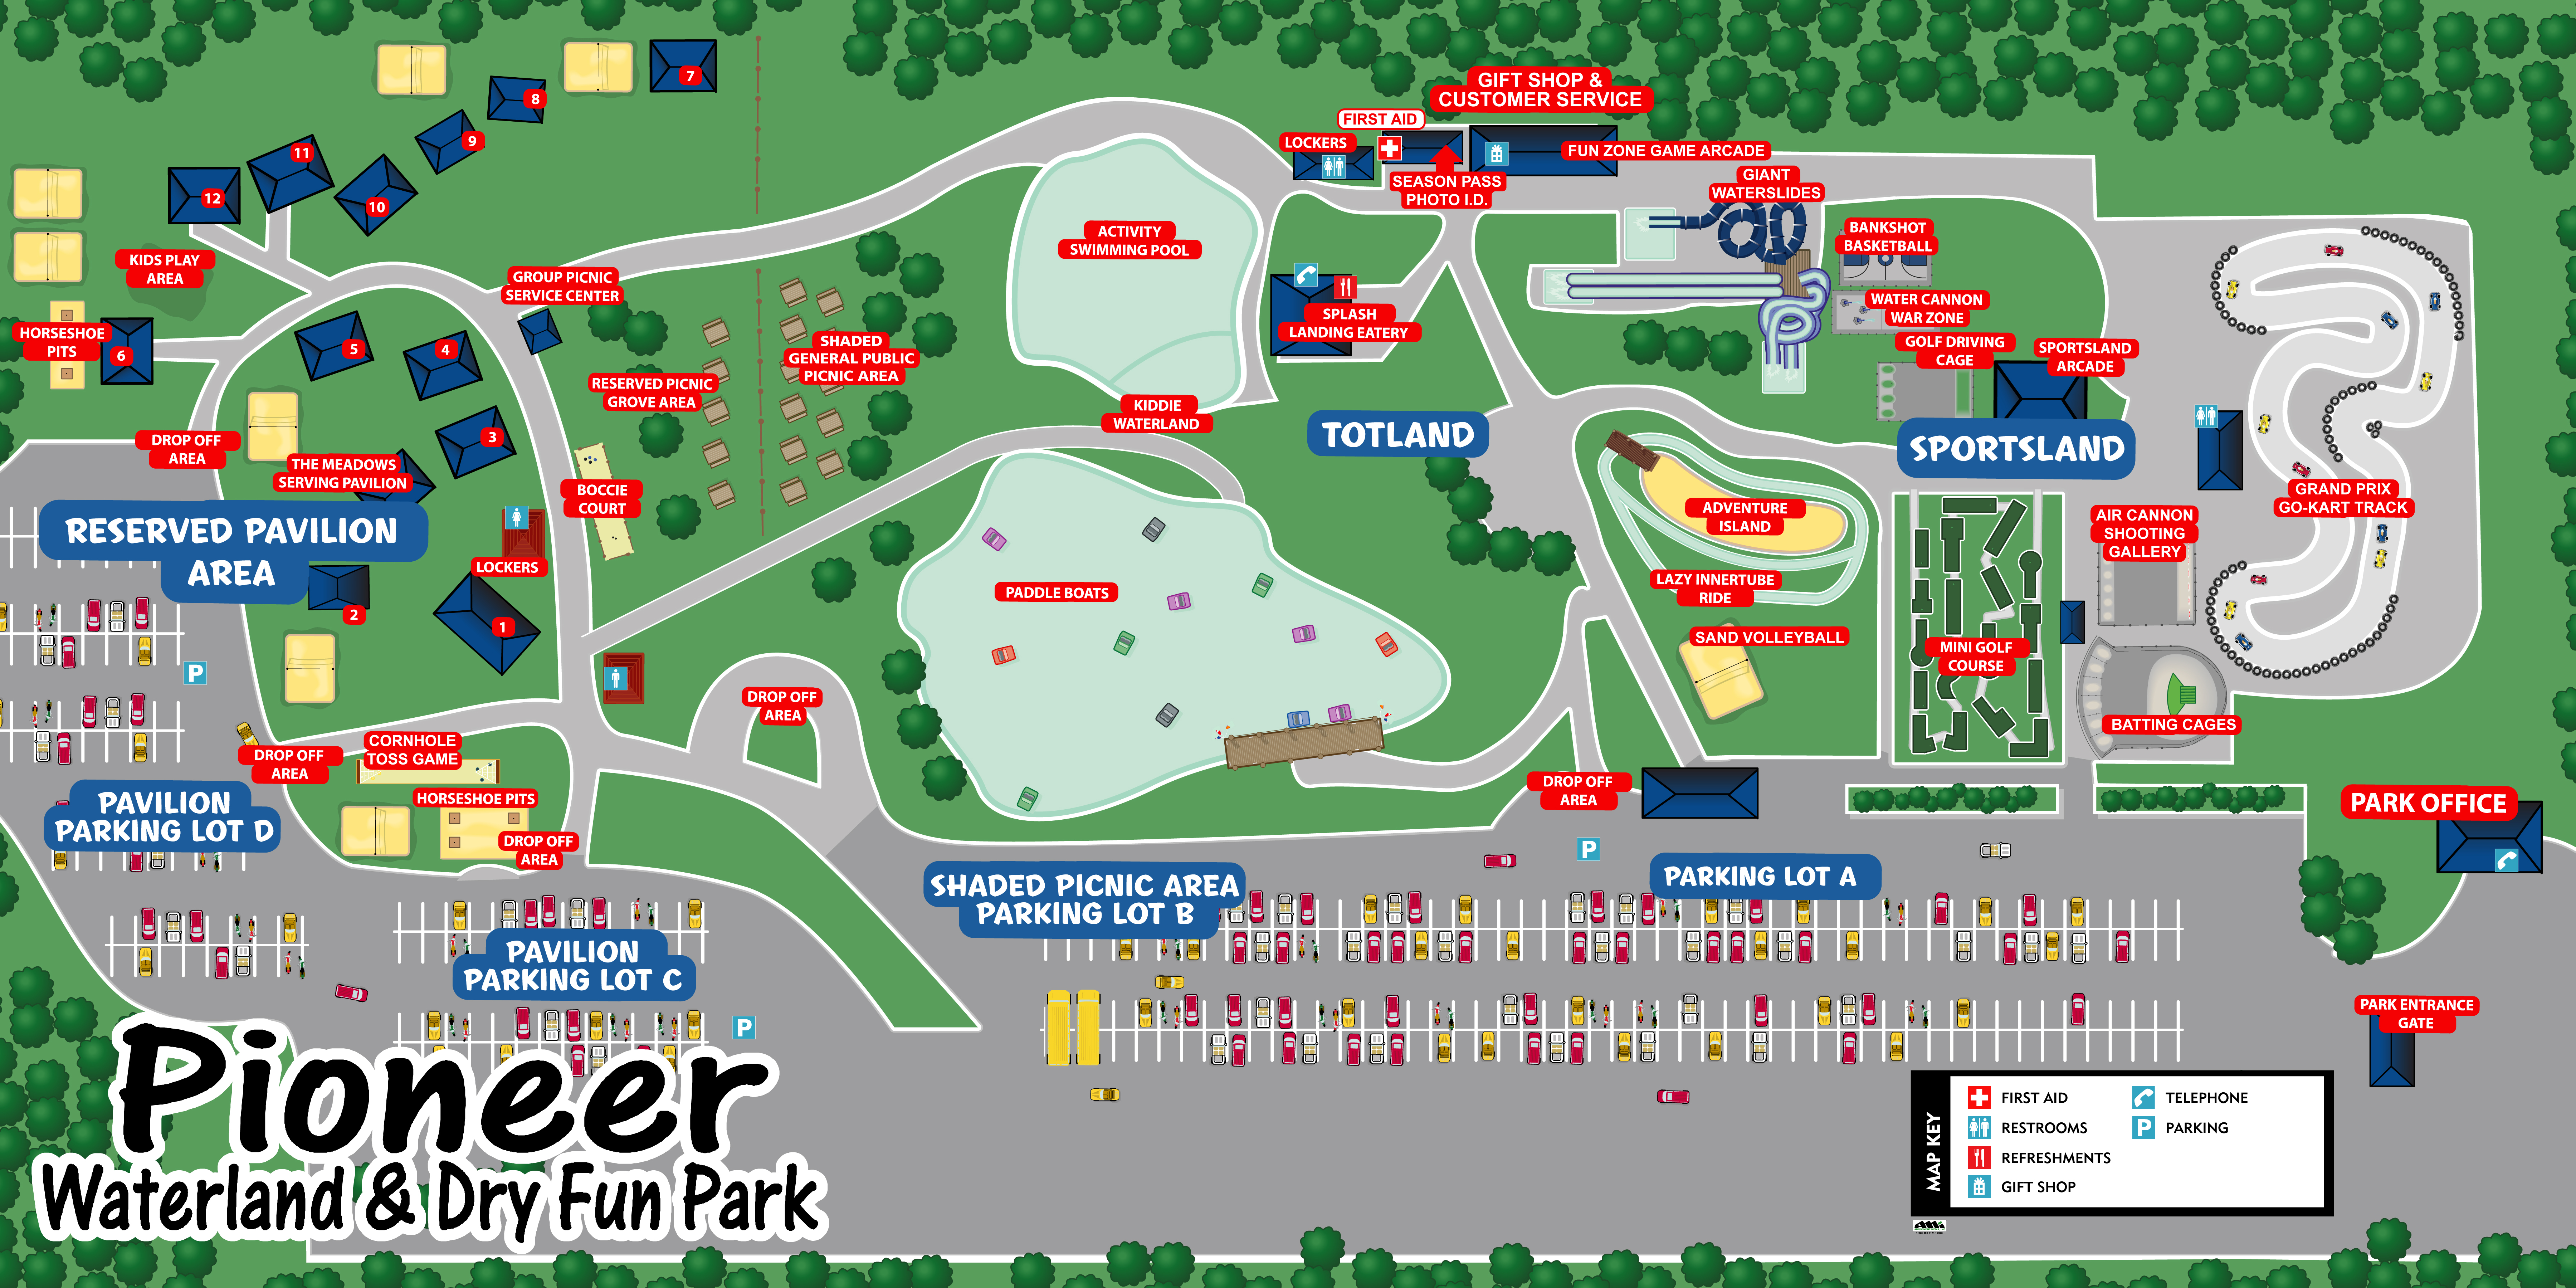 Ohio S Premier Waterland And Dry Fun Park Pioneer Waterland Park Map